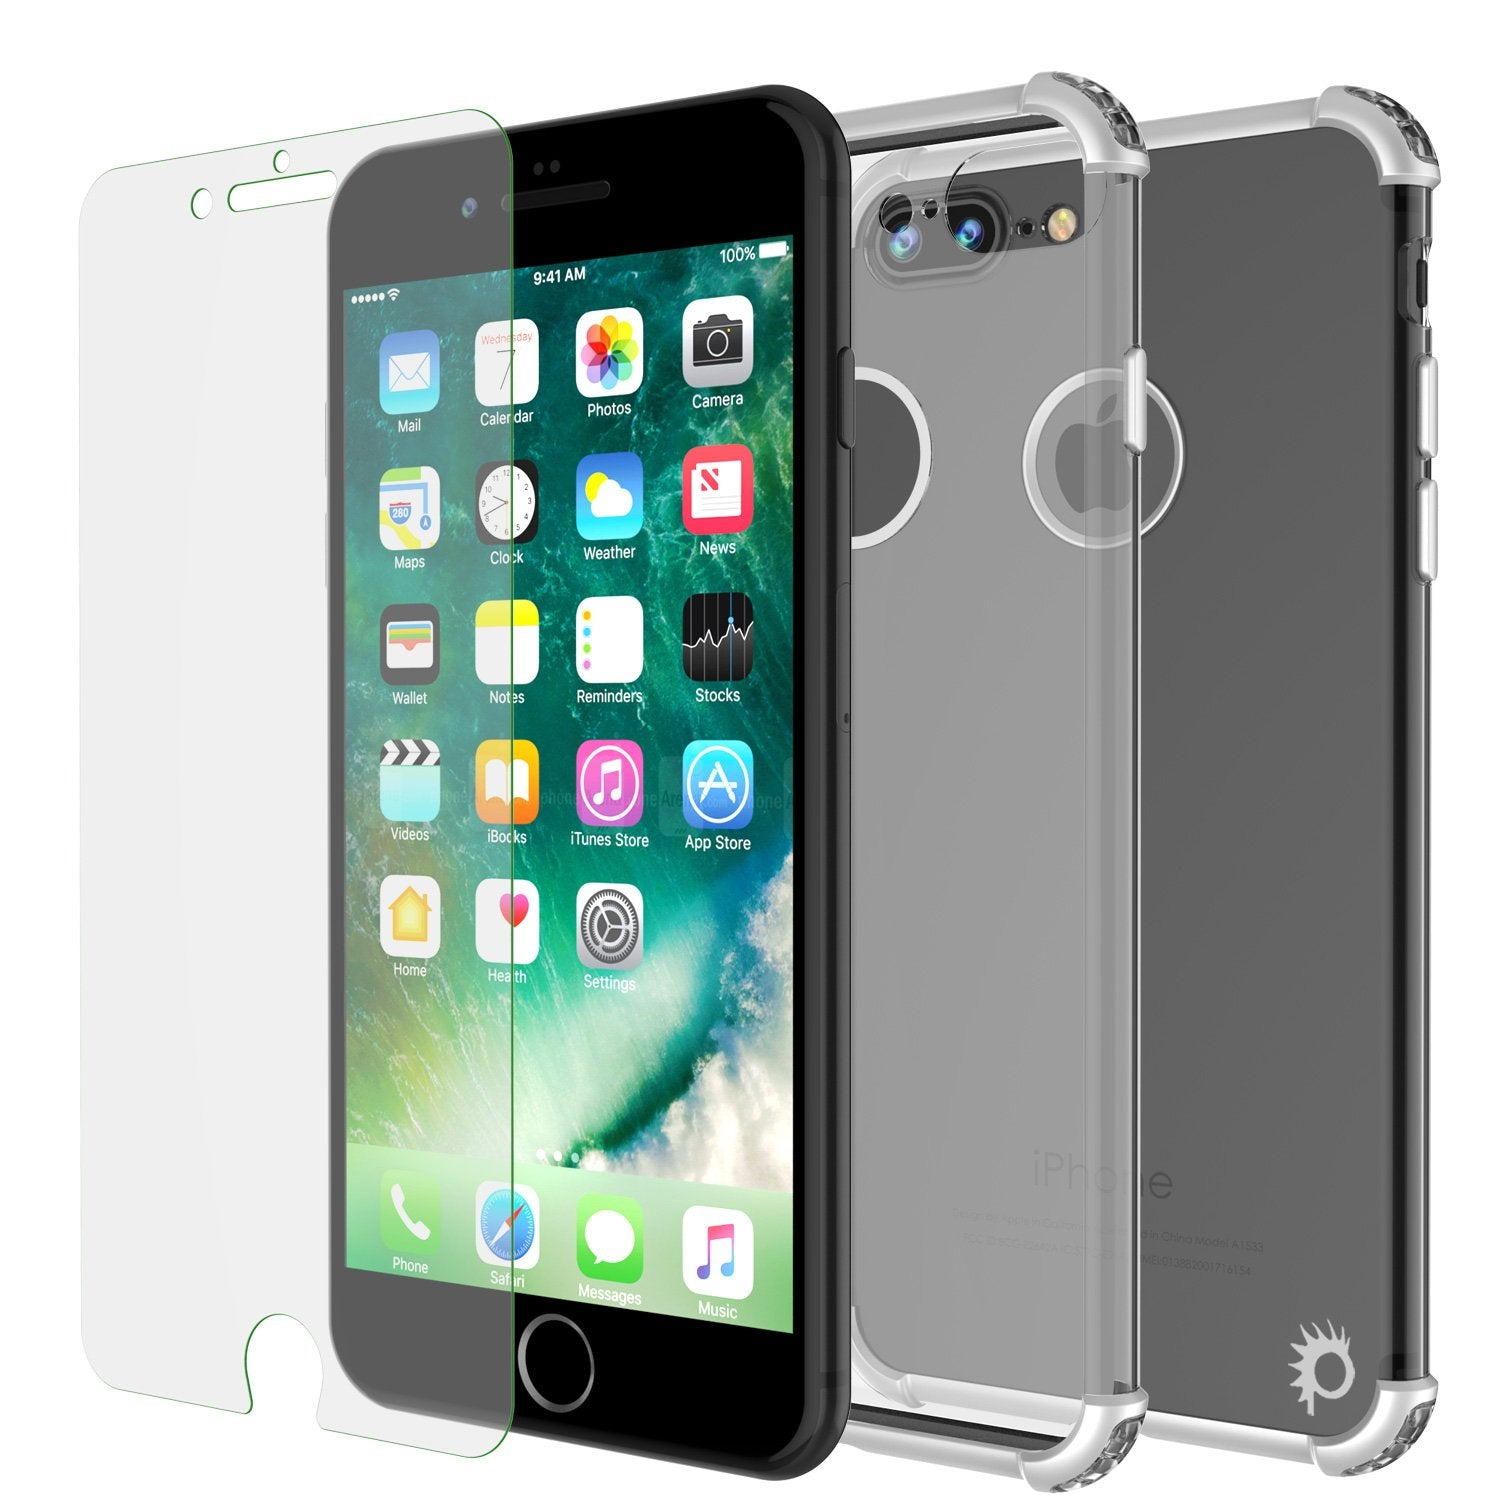 iPhone 8 PLUS Case, Punkcase [BLAZE SERIES] Protective Cover W/ PunkShield Screen Protector [Shockproof] [Slim Fit] for Apple iPhone 7/8/6/6s PLUS [Silver] - PunkCase NZ